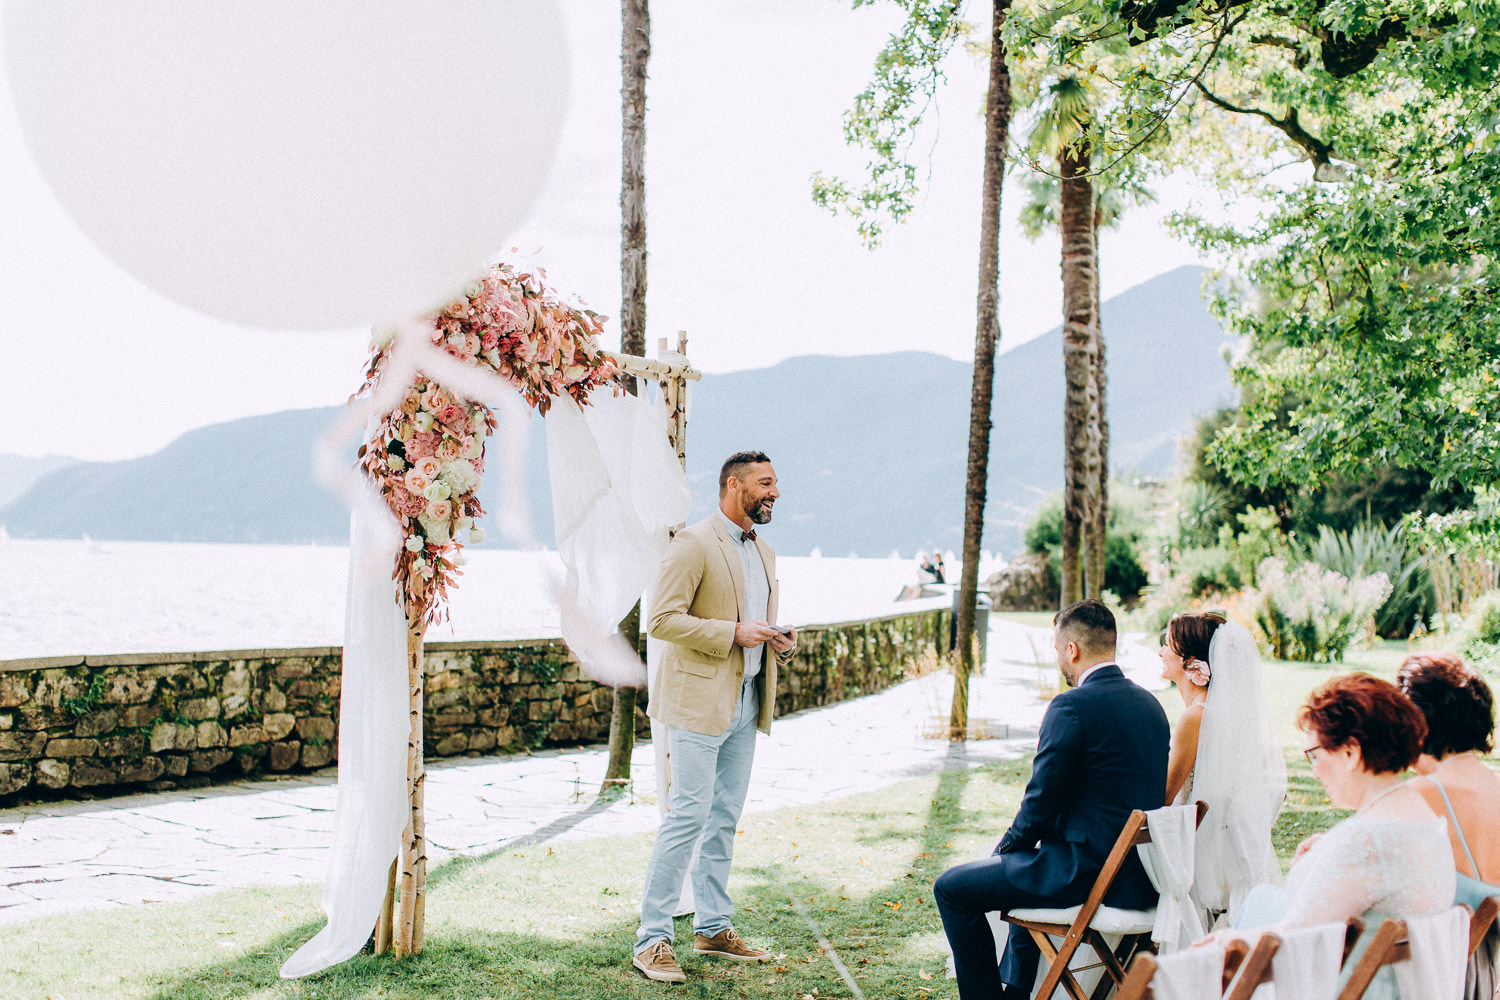 davidandkathrin-com-ticino-brissago-wedding-photographer-084